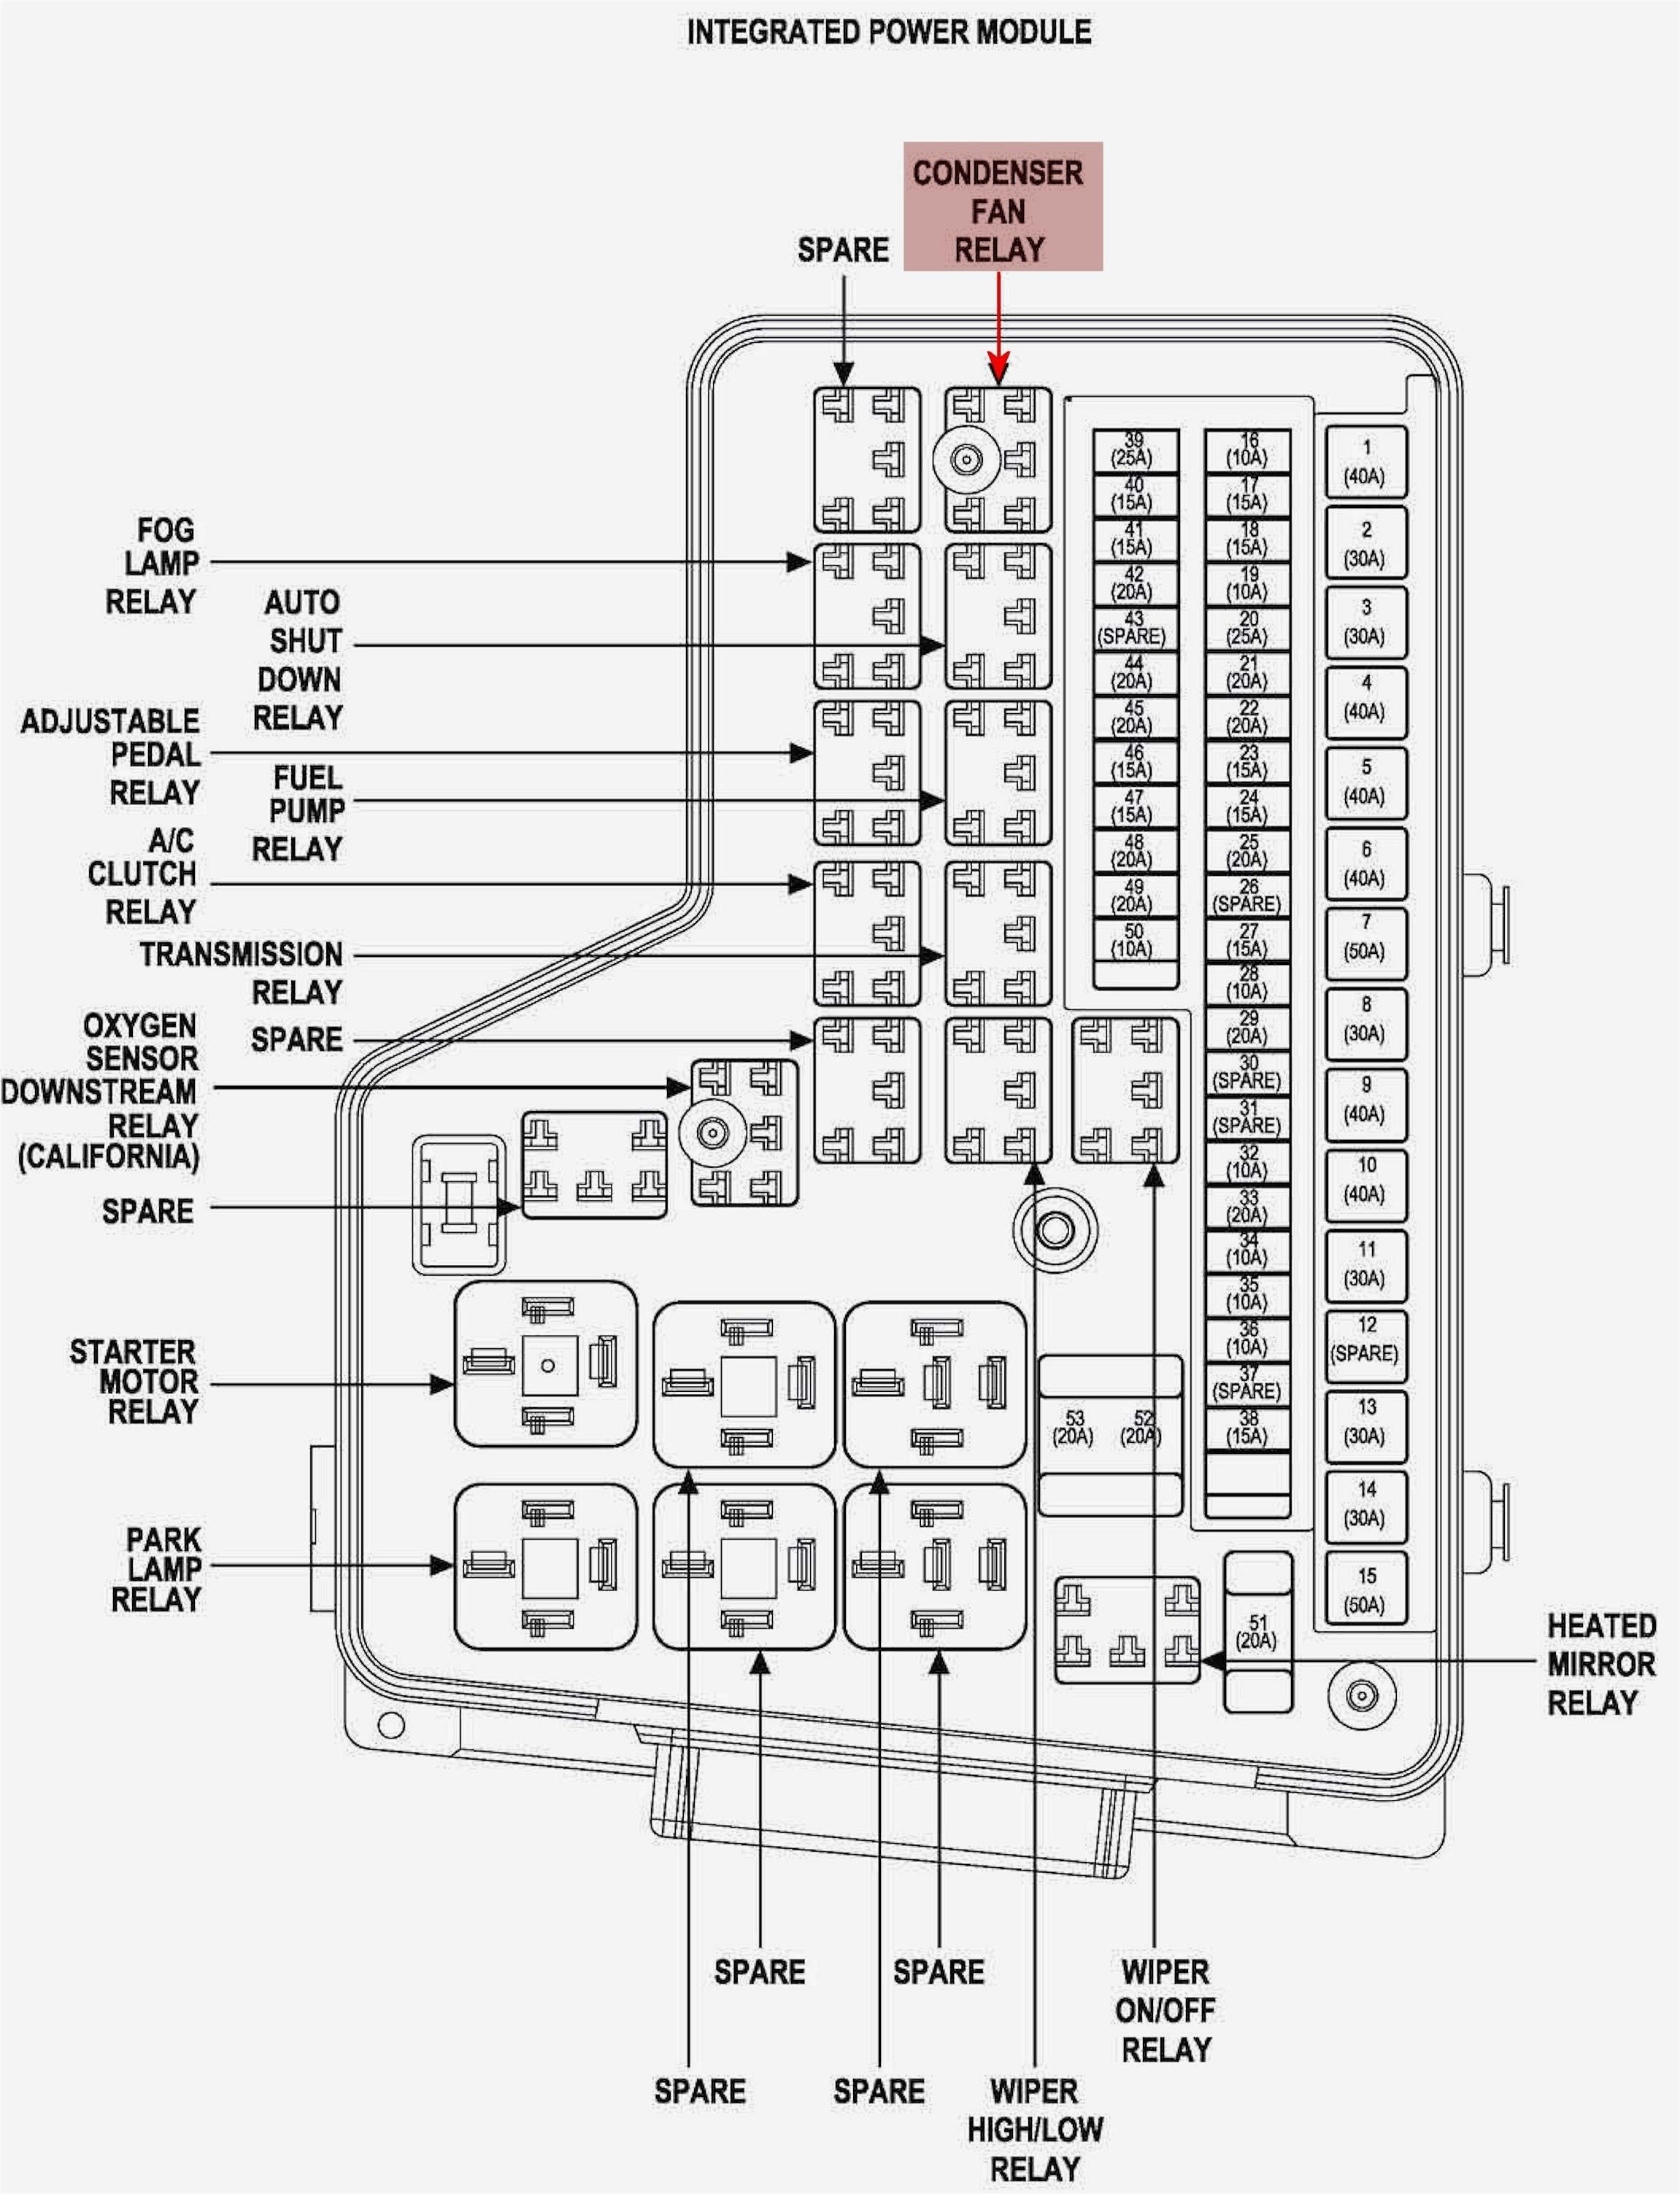 97 Dodge Ram Trailer Wiring Diagram - Wiring Diagram Networks